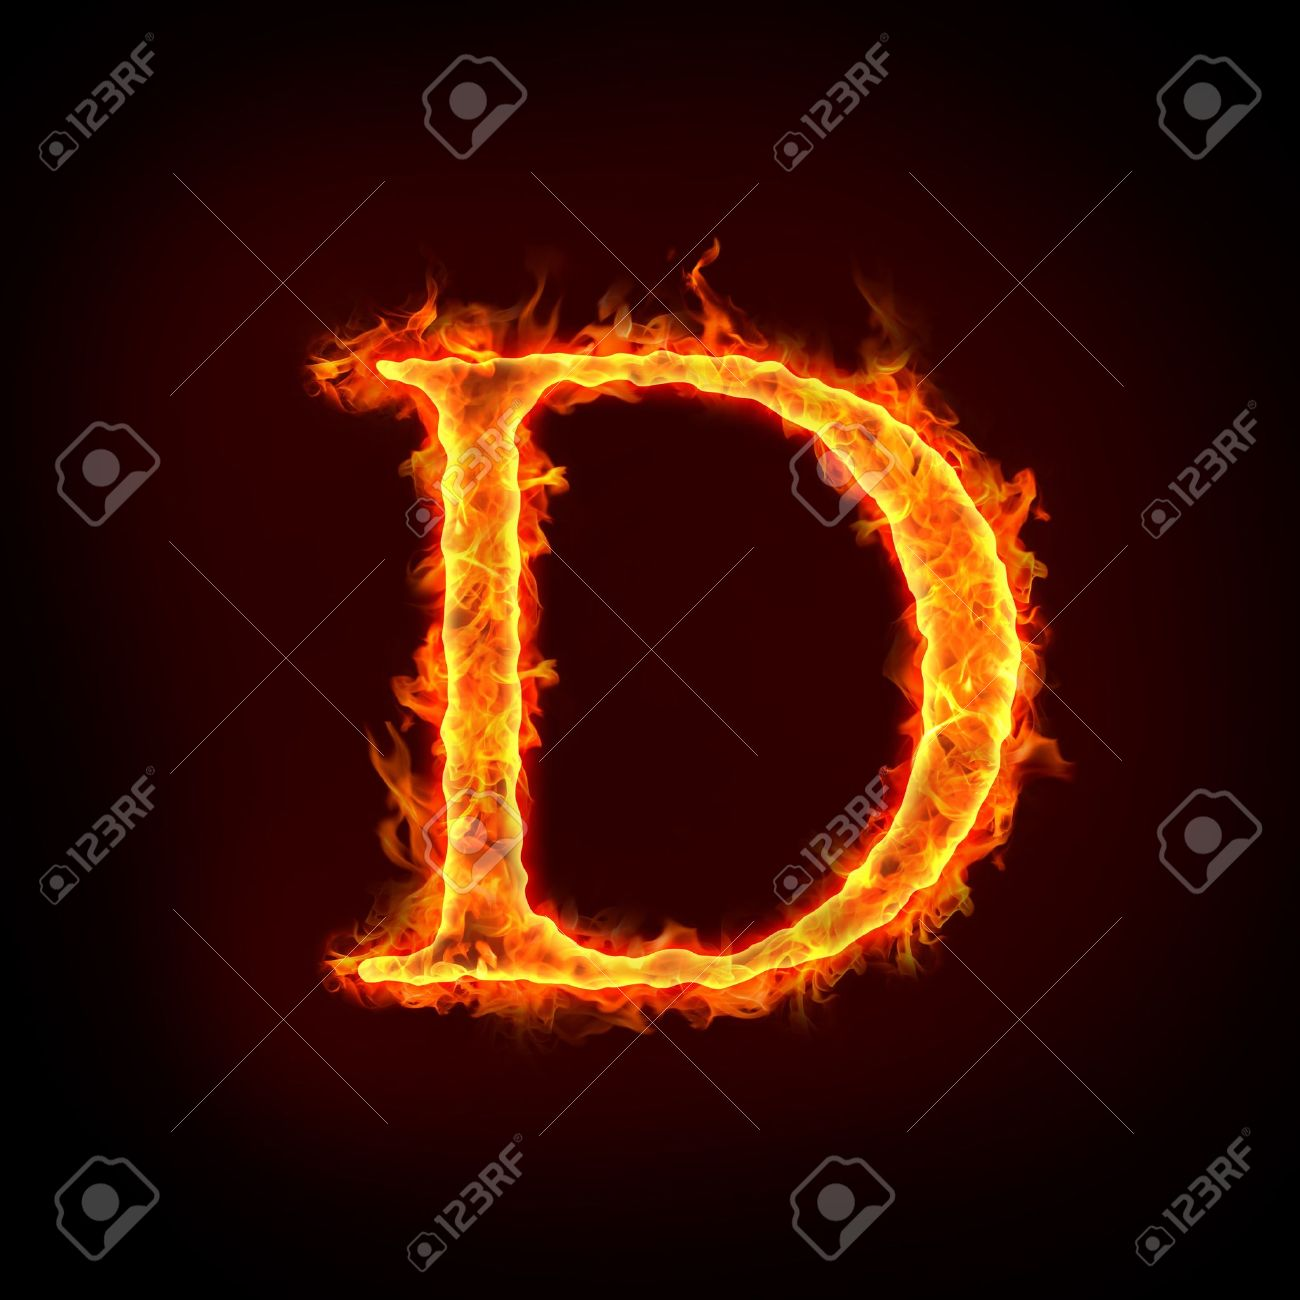 Fire Alphabets In Flame, Letter D Stock Photo, Picture And Royalty